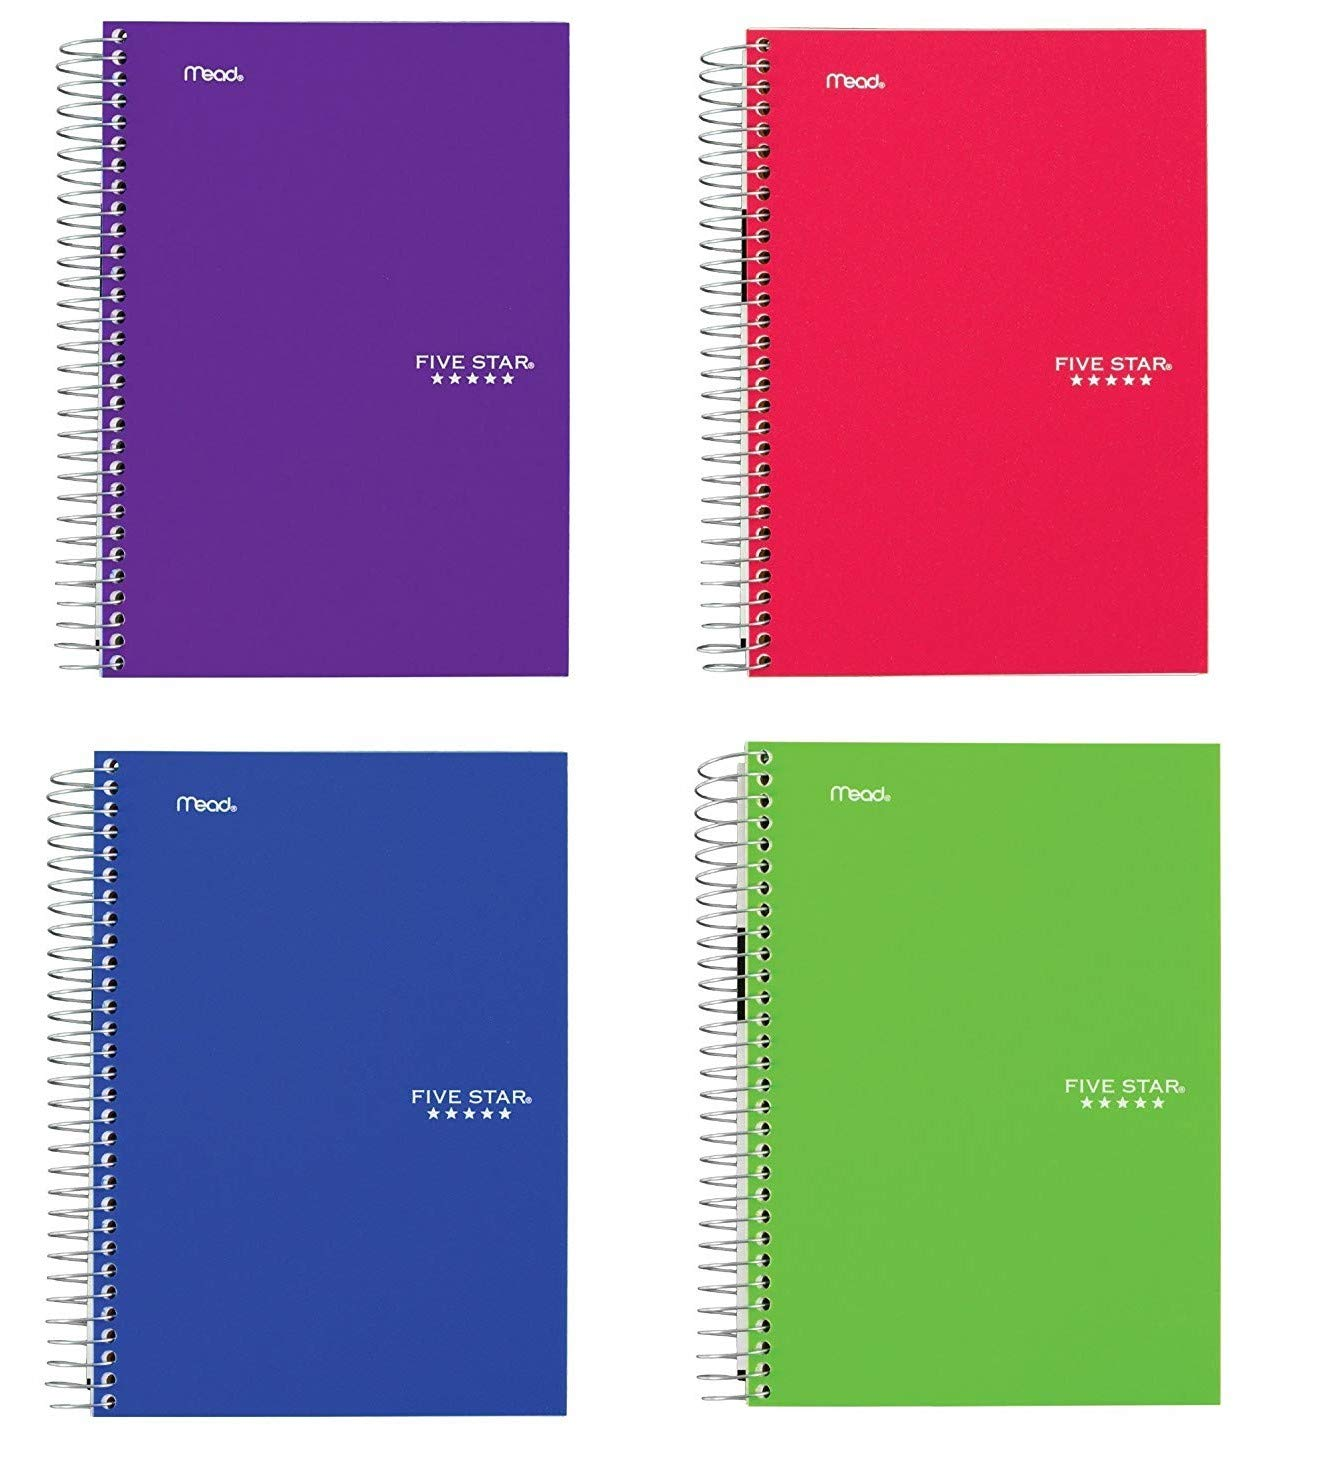 Five Star Spiral Notebooks, 5 Subject, College Ruled Paper, 180 Sheets, 9-1/2'' x 6'', Color Will Vary, 4 Pack (06184) by Five Star